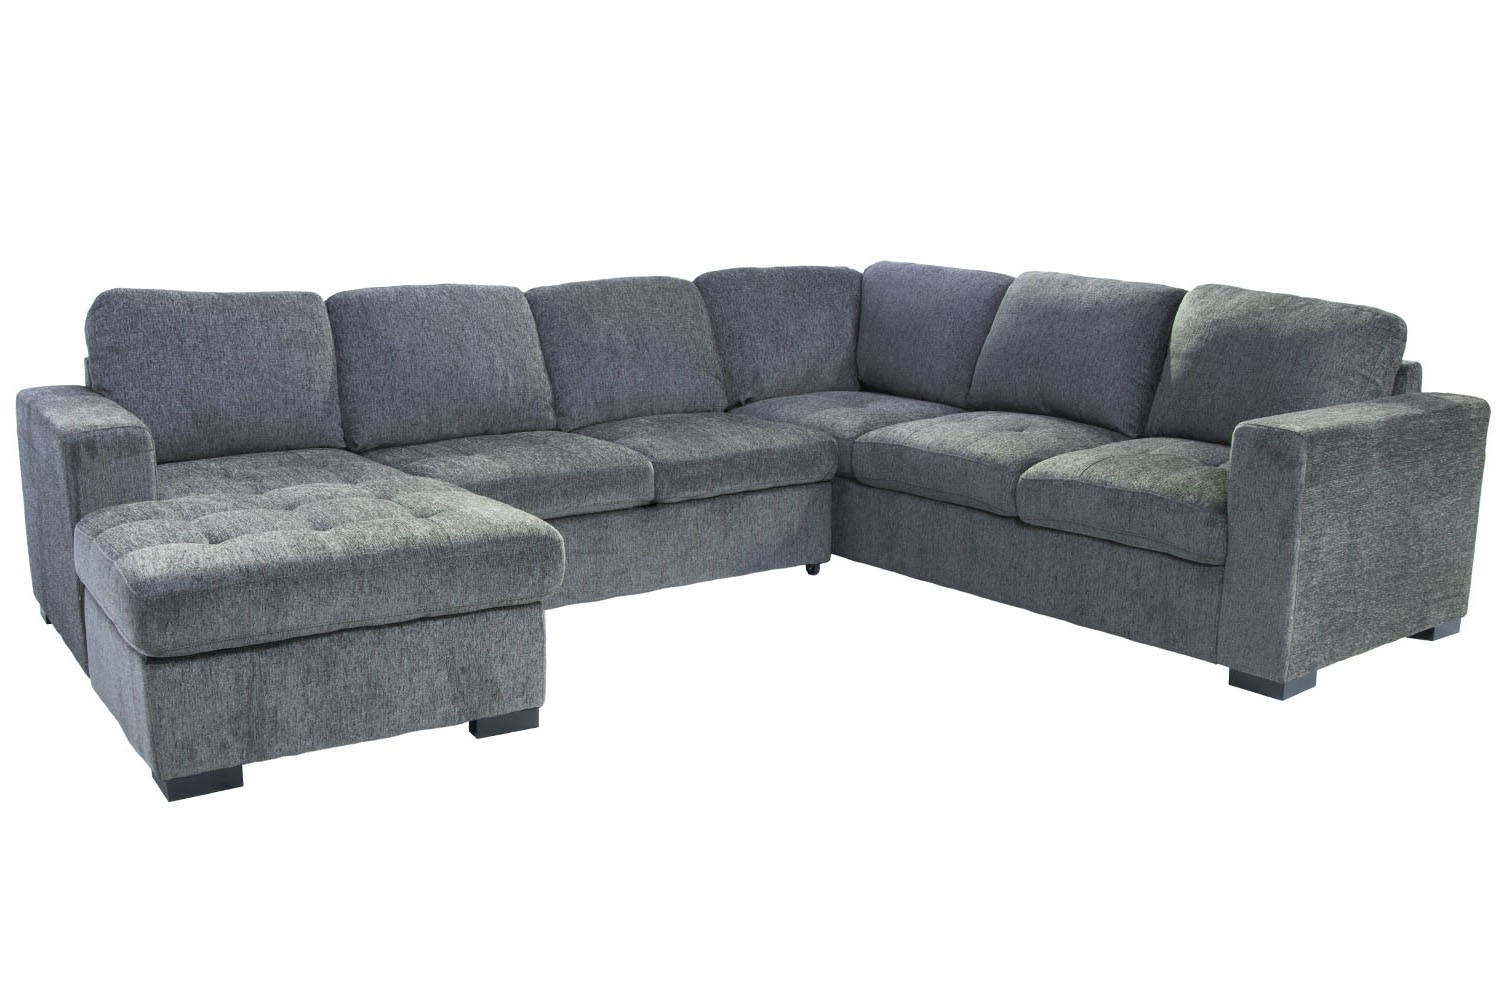 Sectional Sofas | Save Mor Online And In-Store pertaining to Aspen 2 Piece Sectionals With Raf Chaise (Image 27 of 30)